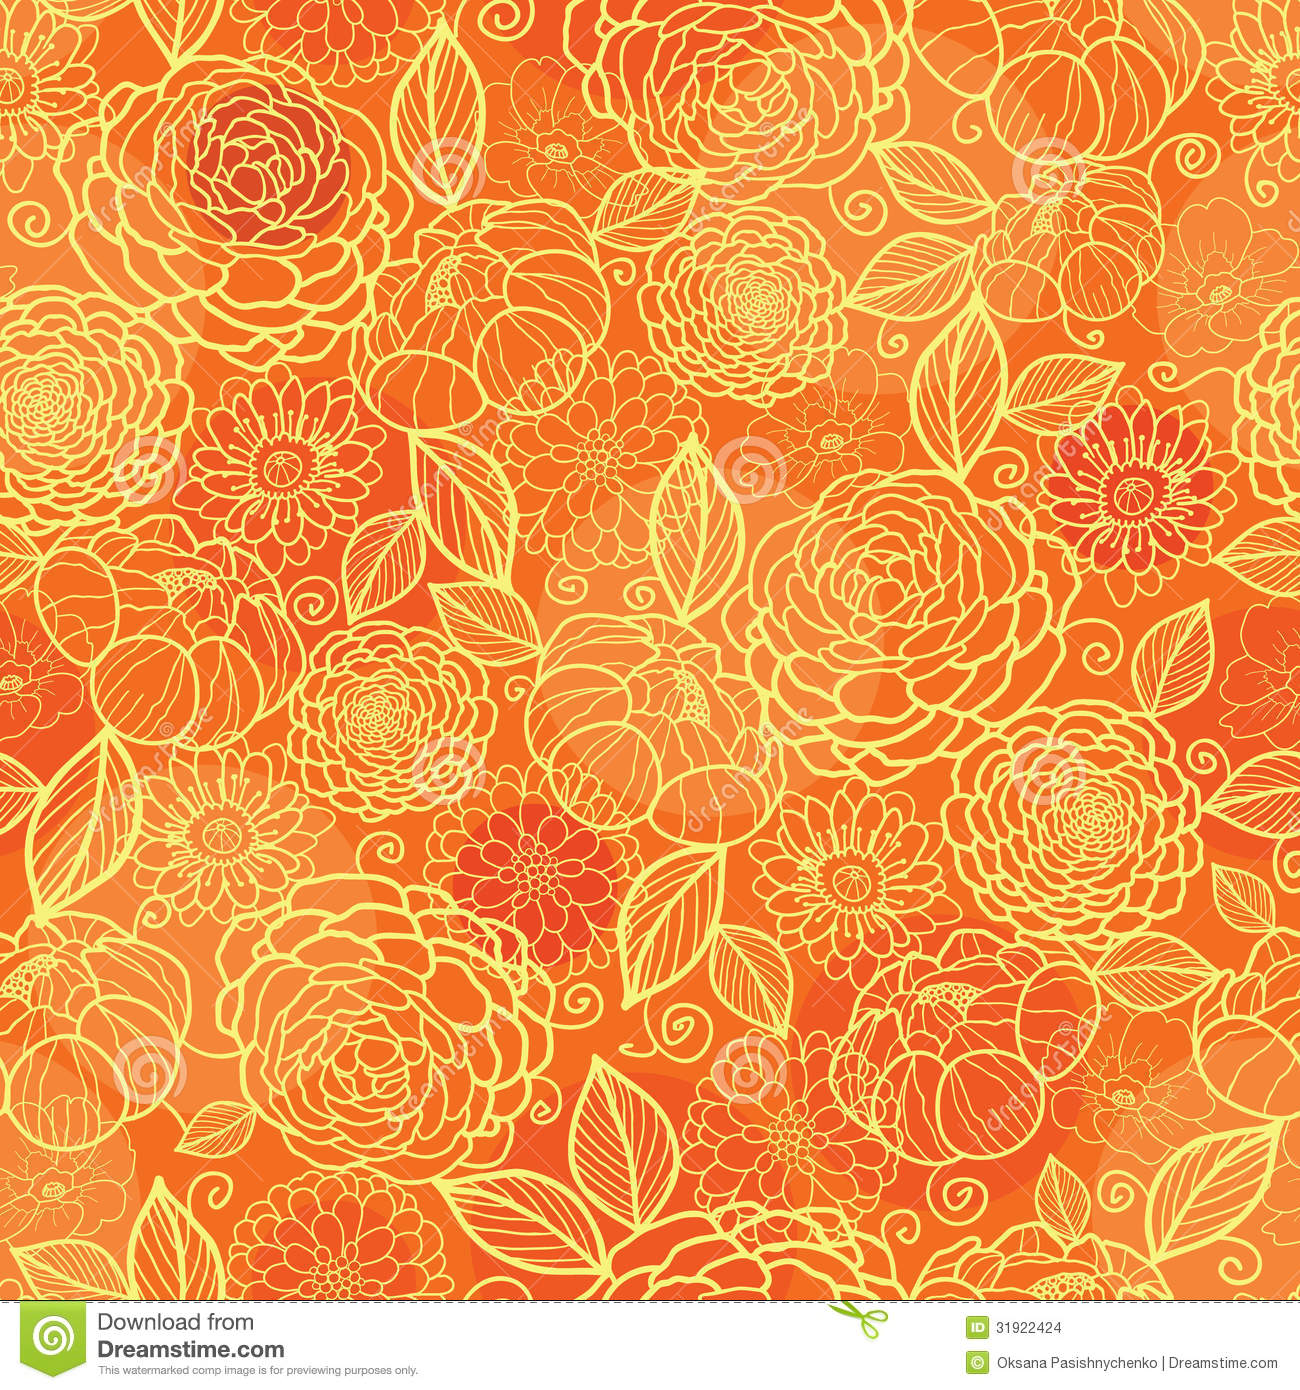 Golden Orange Floral Texture Seamless Pattern Stock Images